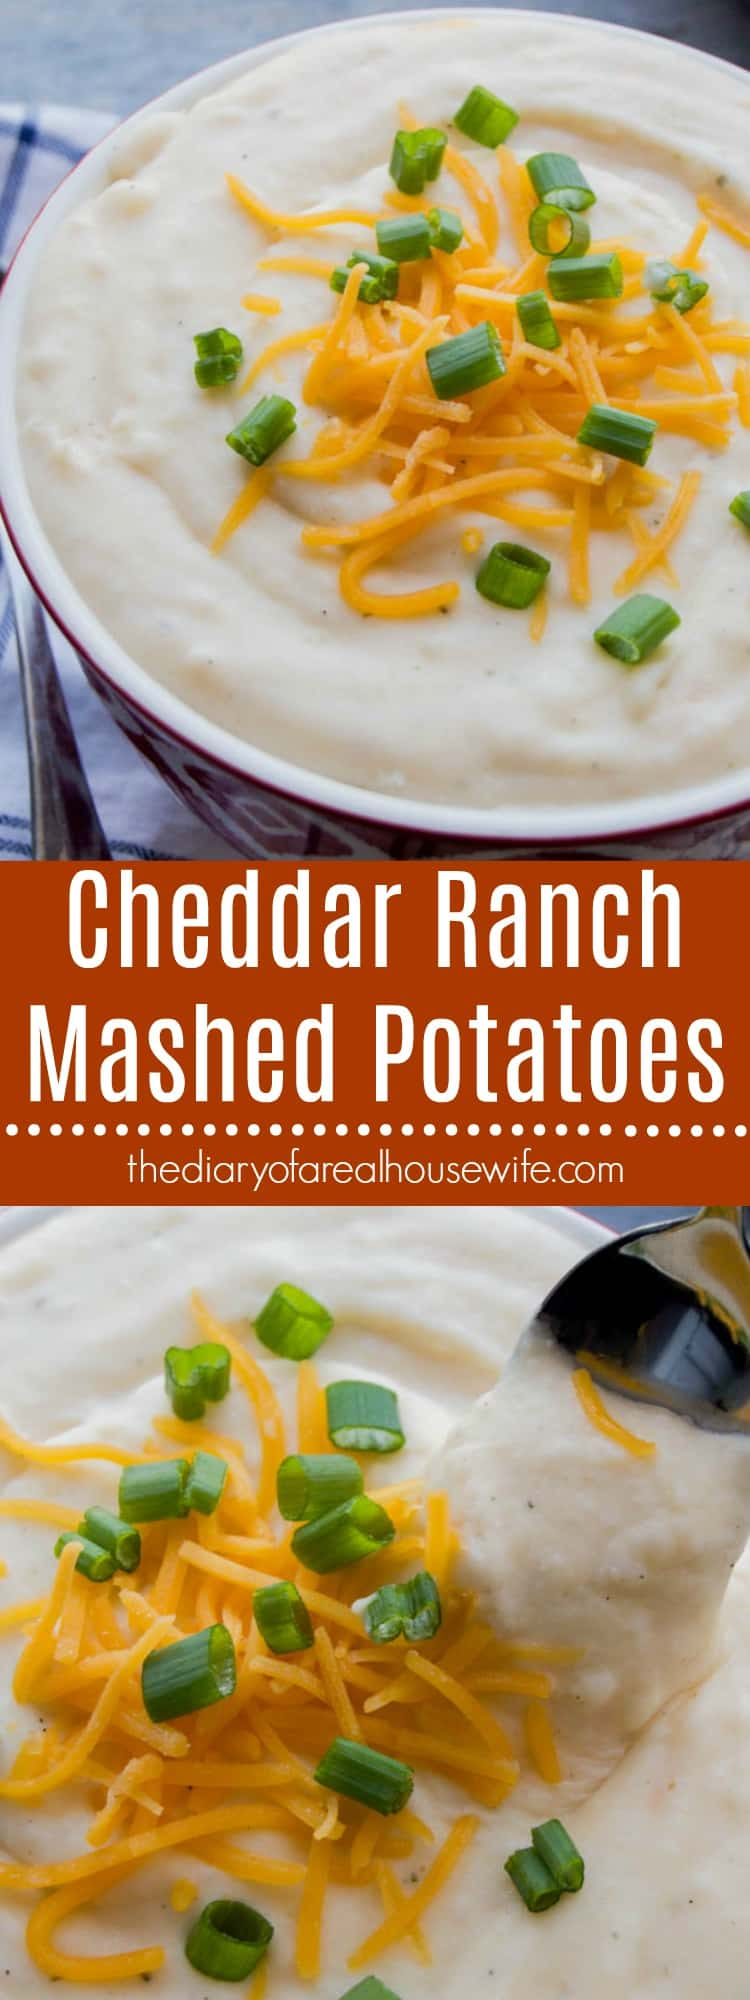 Cheddar Ranch Mashed Potatoes